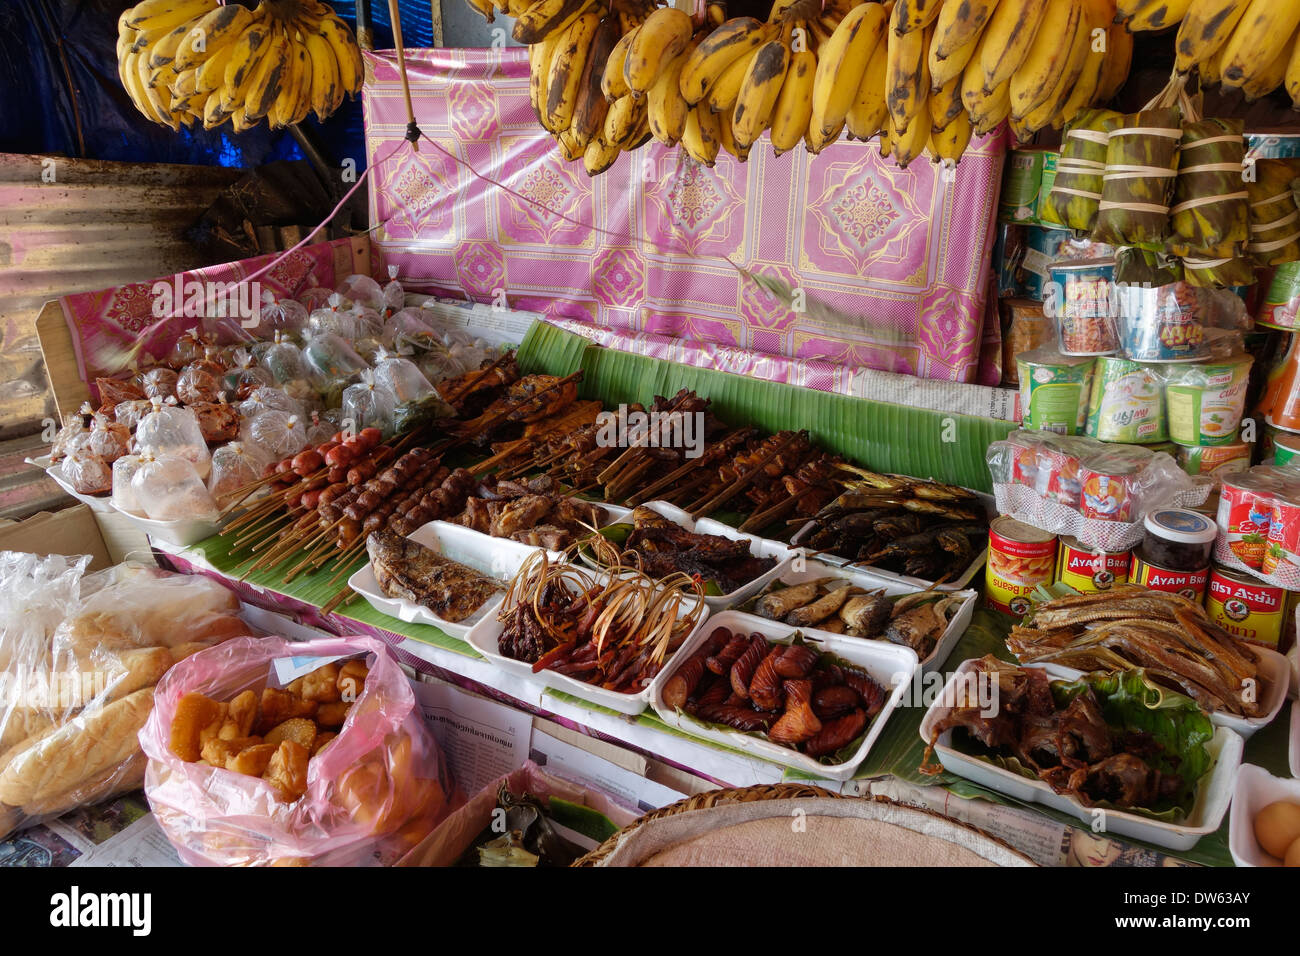 Food for sale in front of a shop in Vientiane, Laos. - Stock Image